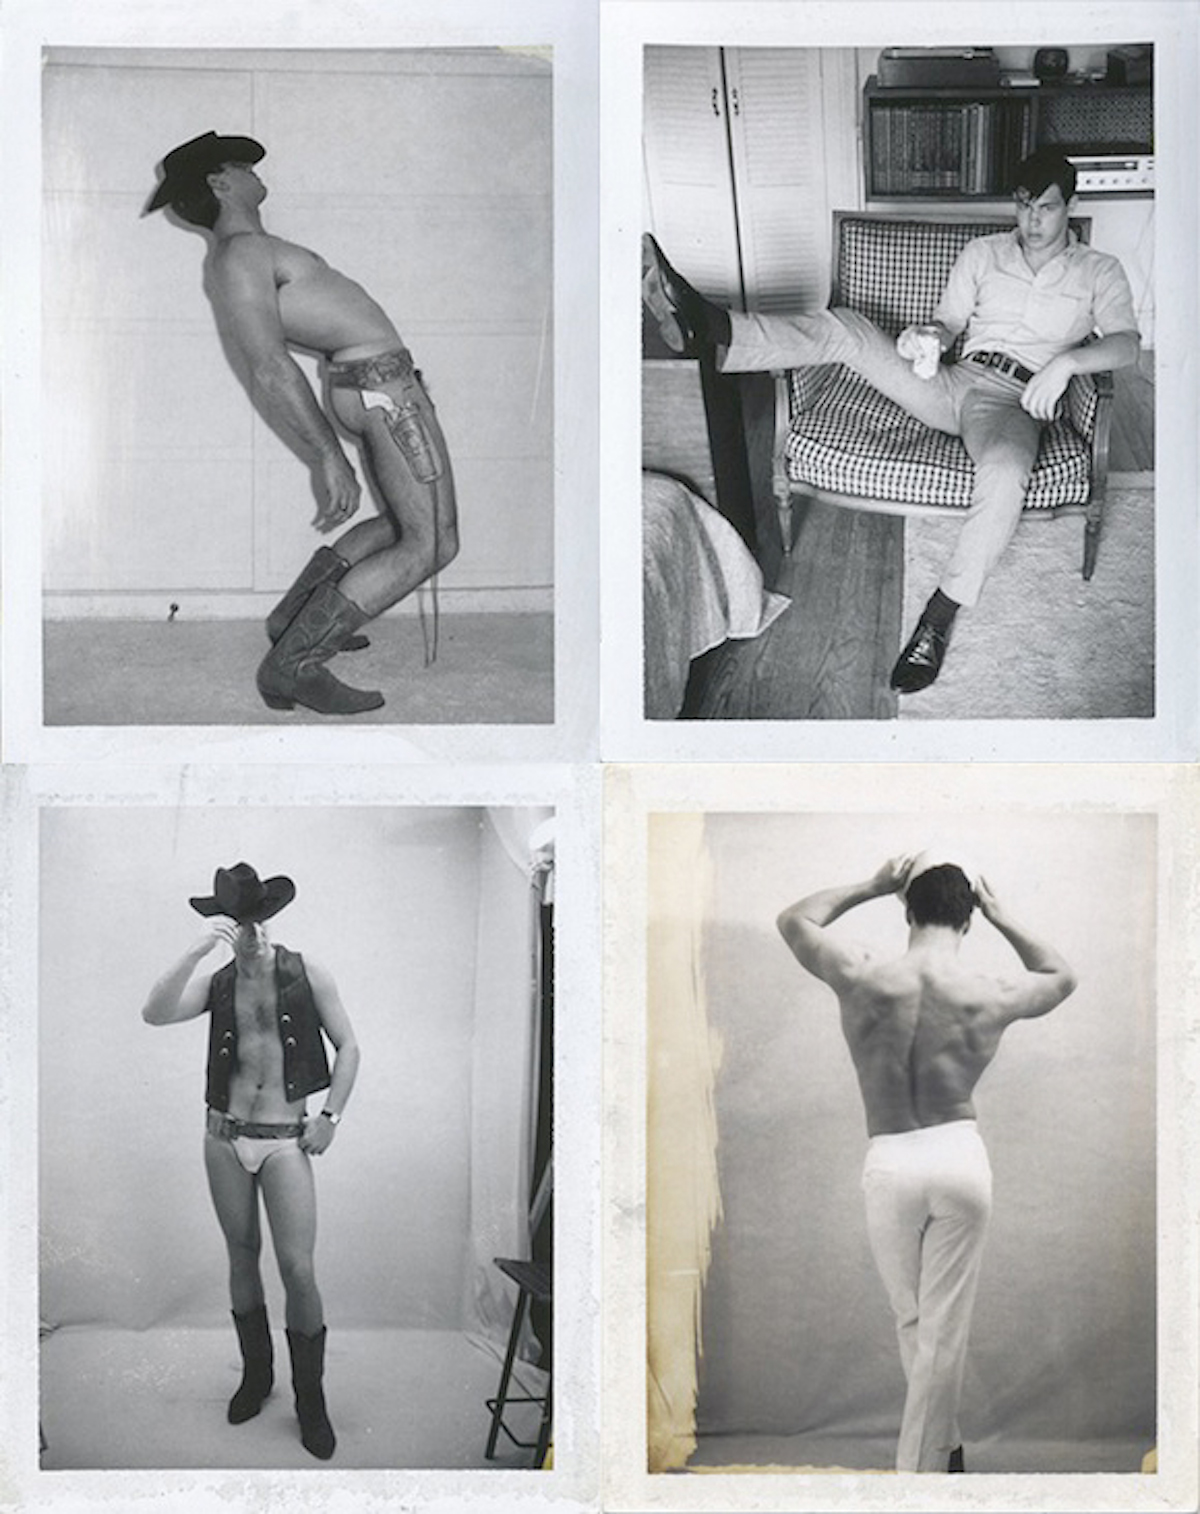 Polaroid studies, Jim French, late 60s, from Tinker, Tailor, Soldier, Sailor at ClampArt, New York, 2013